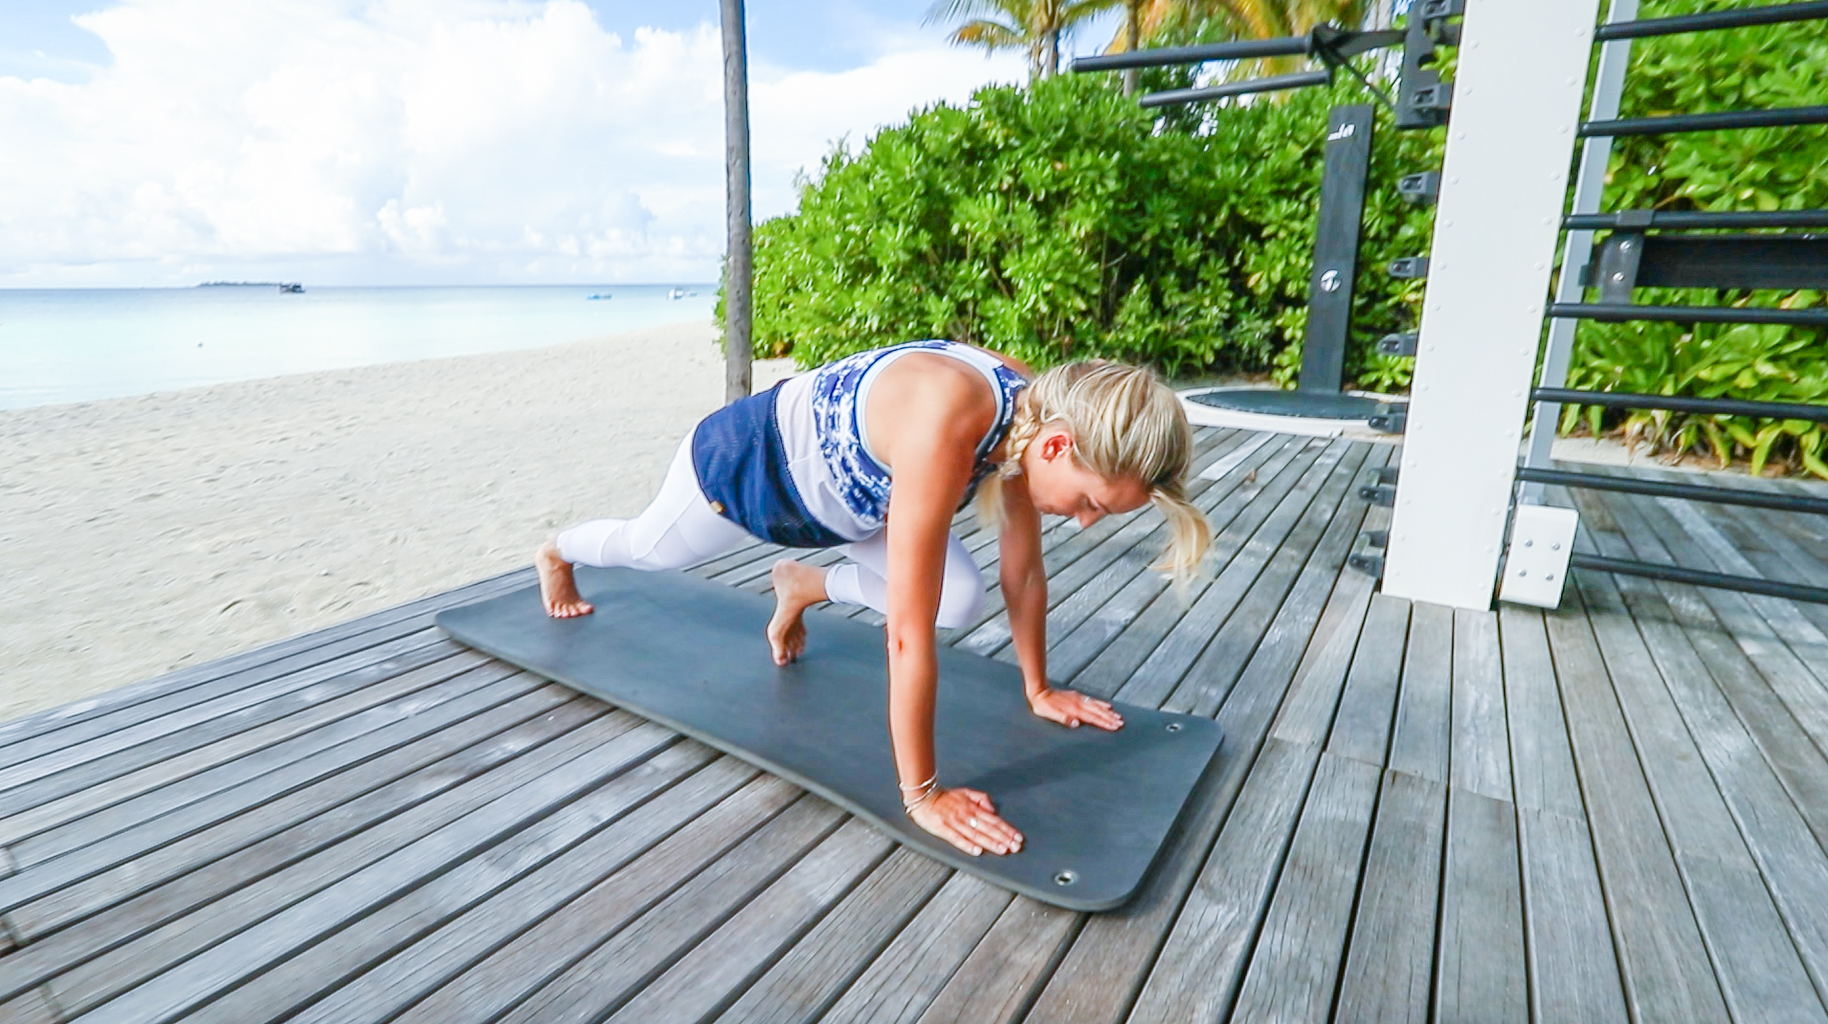 Fitness On Toast Faya Blog Girl Healthy Workout Training Maldives Working Out Ab Routine Beach Easy Moves Rock Hard Stomach Abdominals